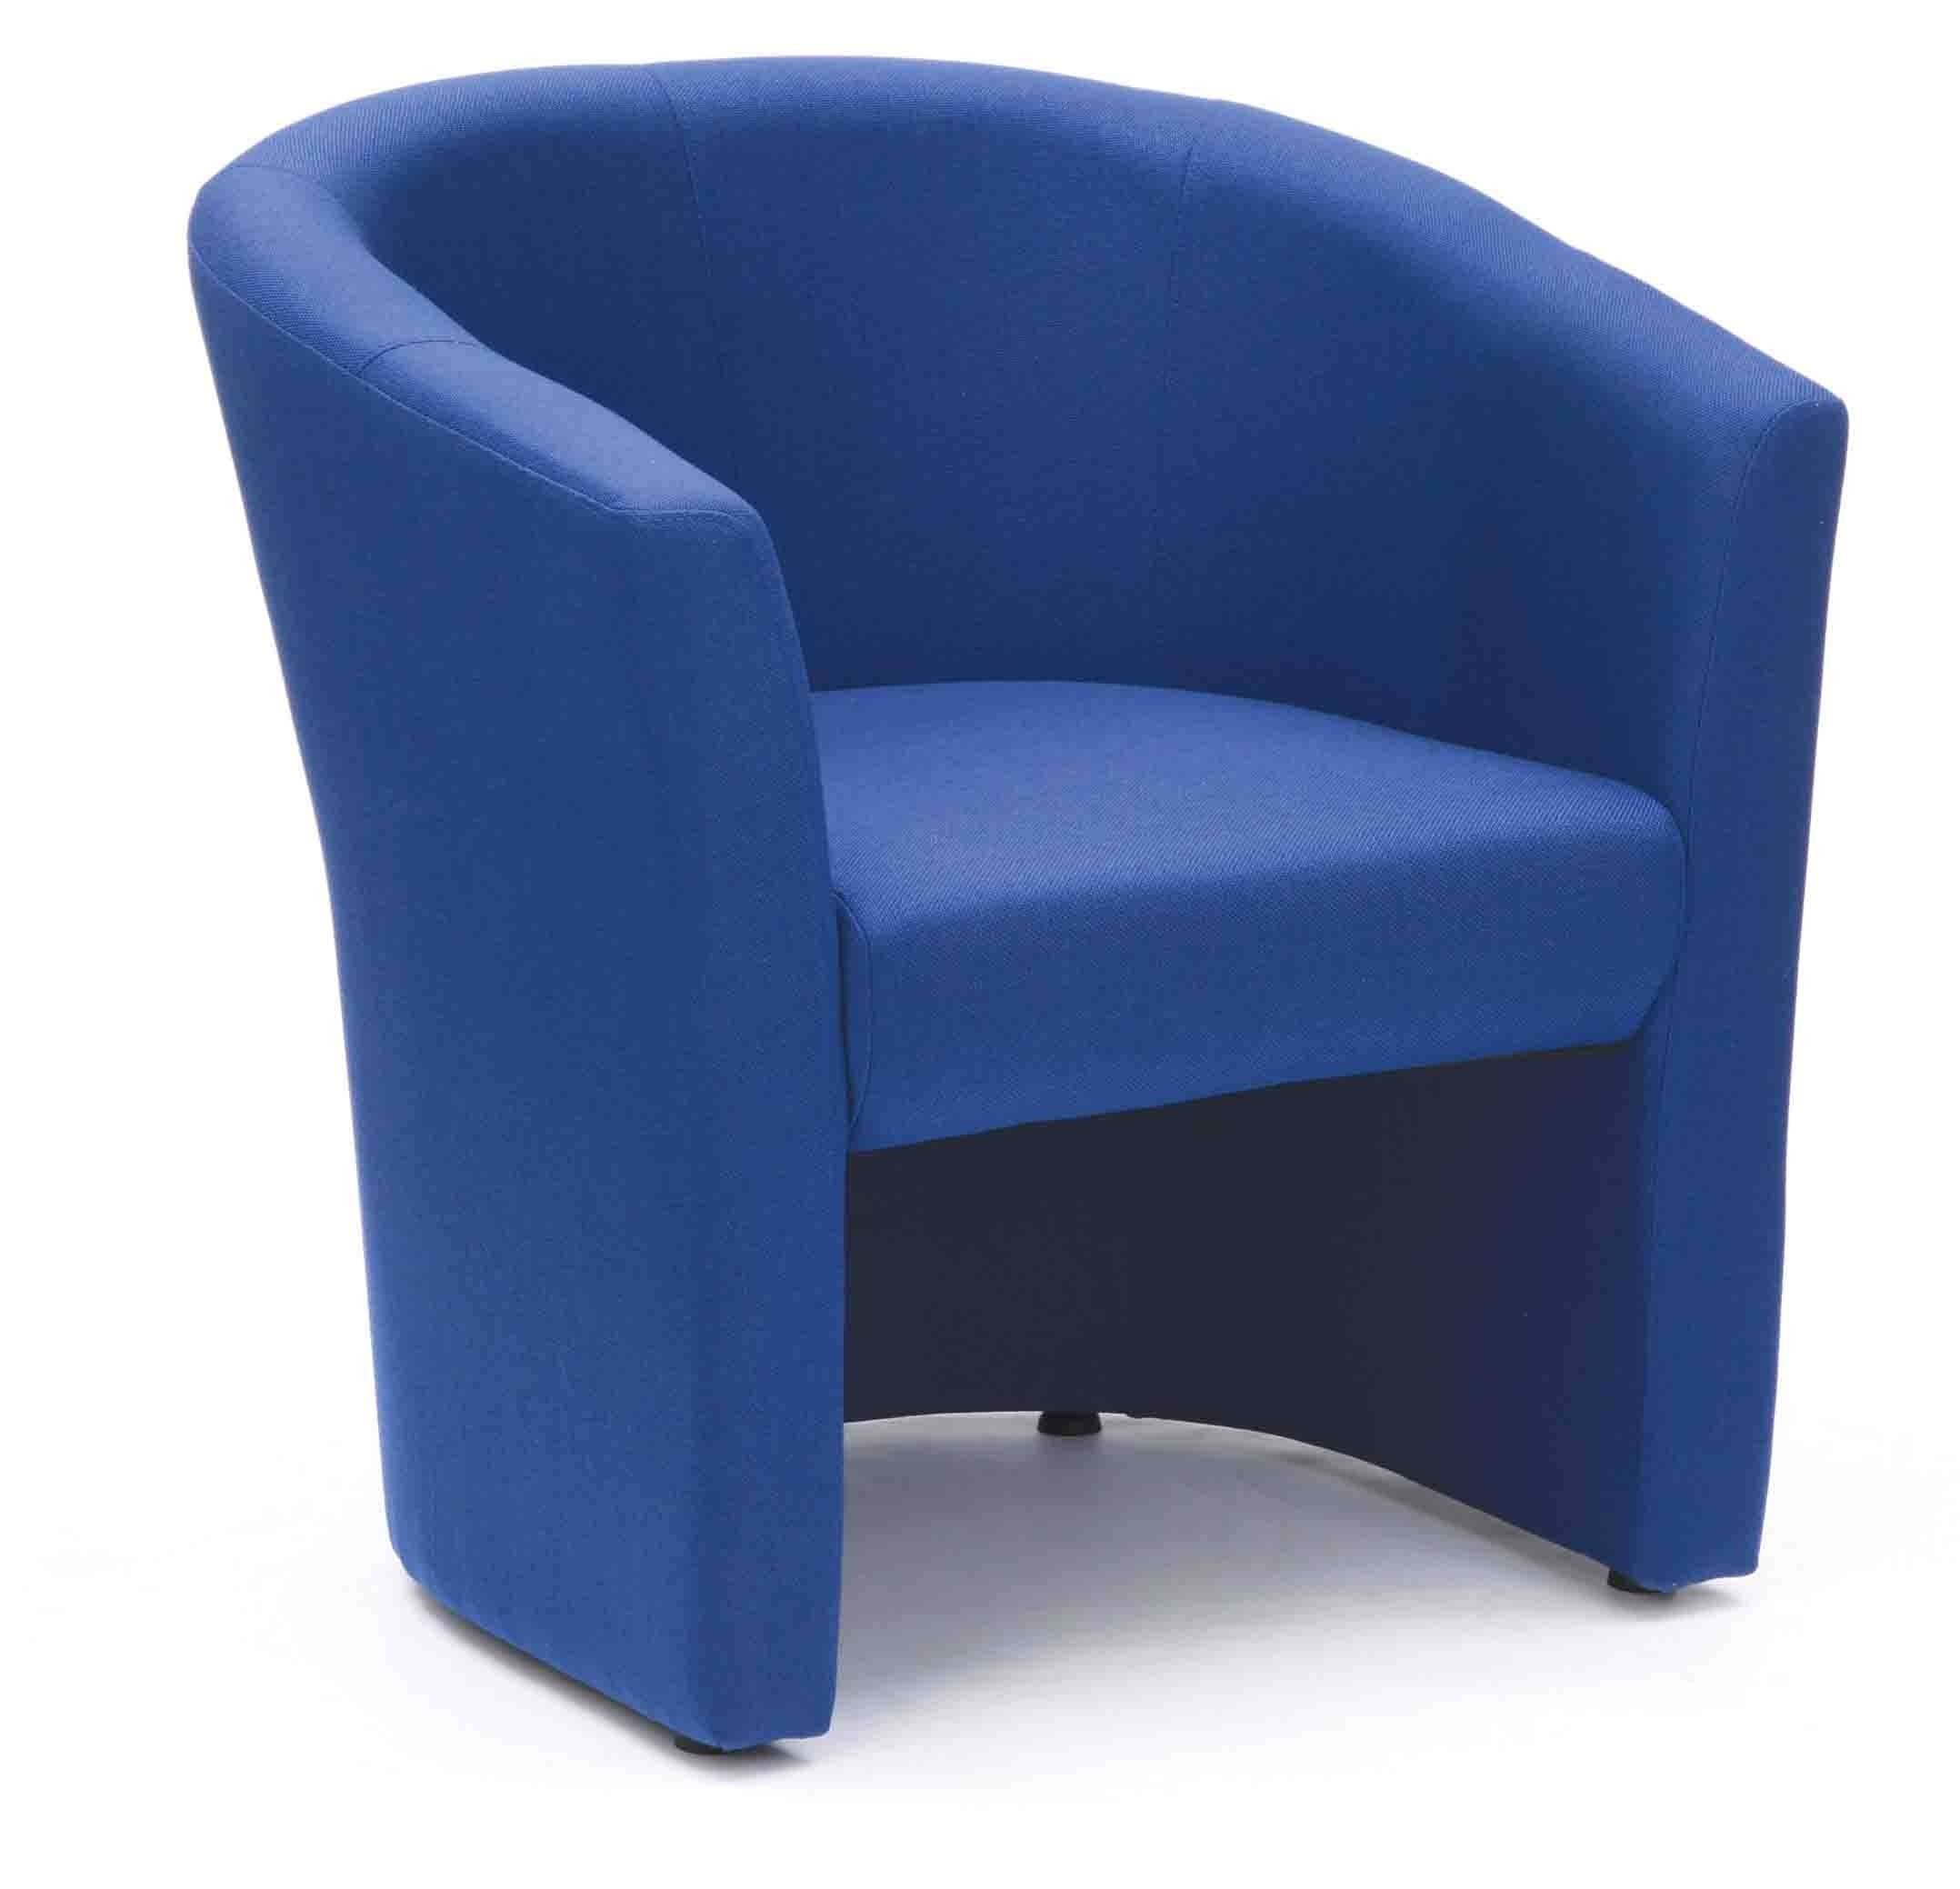 Italian Sofa Chairs 30 The Best Blue Sofa Chairs